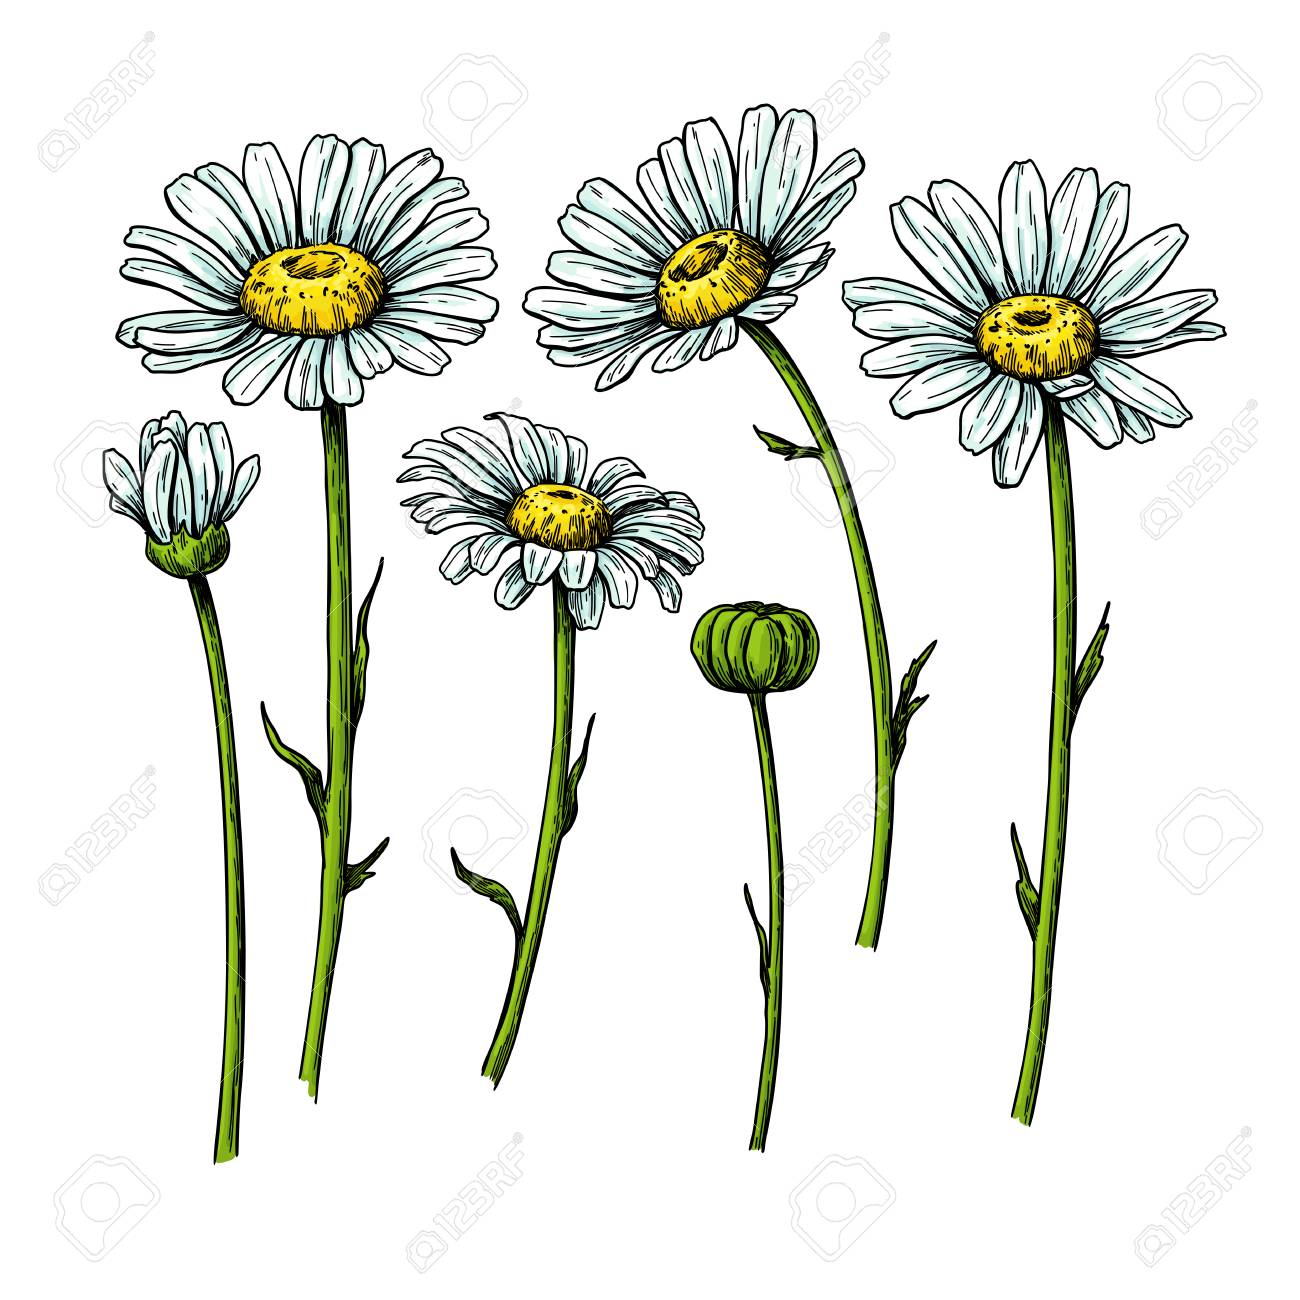 Daisy flower drawing. Vector hand drawn floral object. Chamomile sketch set. Wild botanical garden bloom. Great for tea packaging, label, icon, greeting cards, decor - 112316047